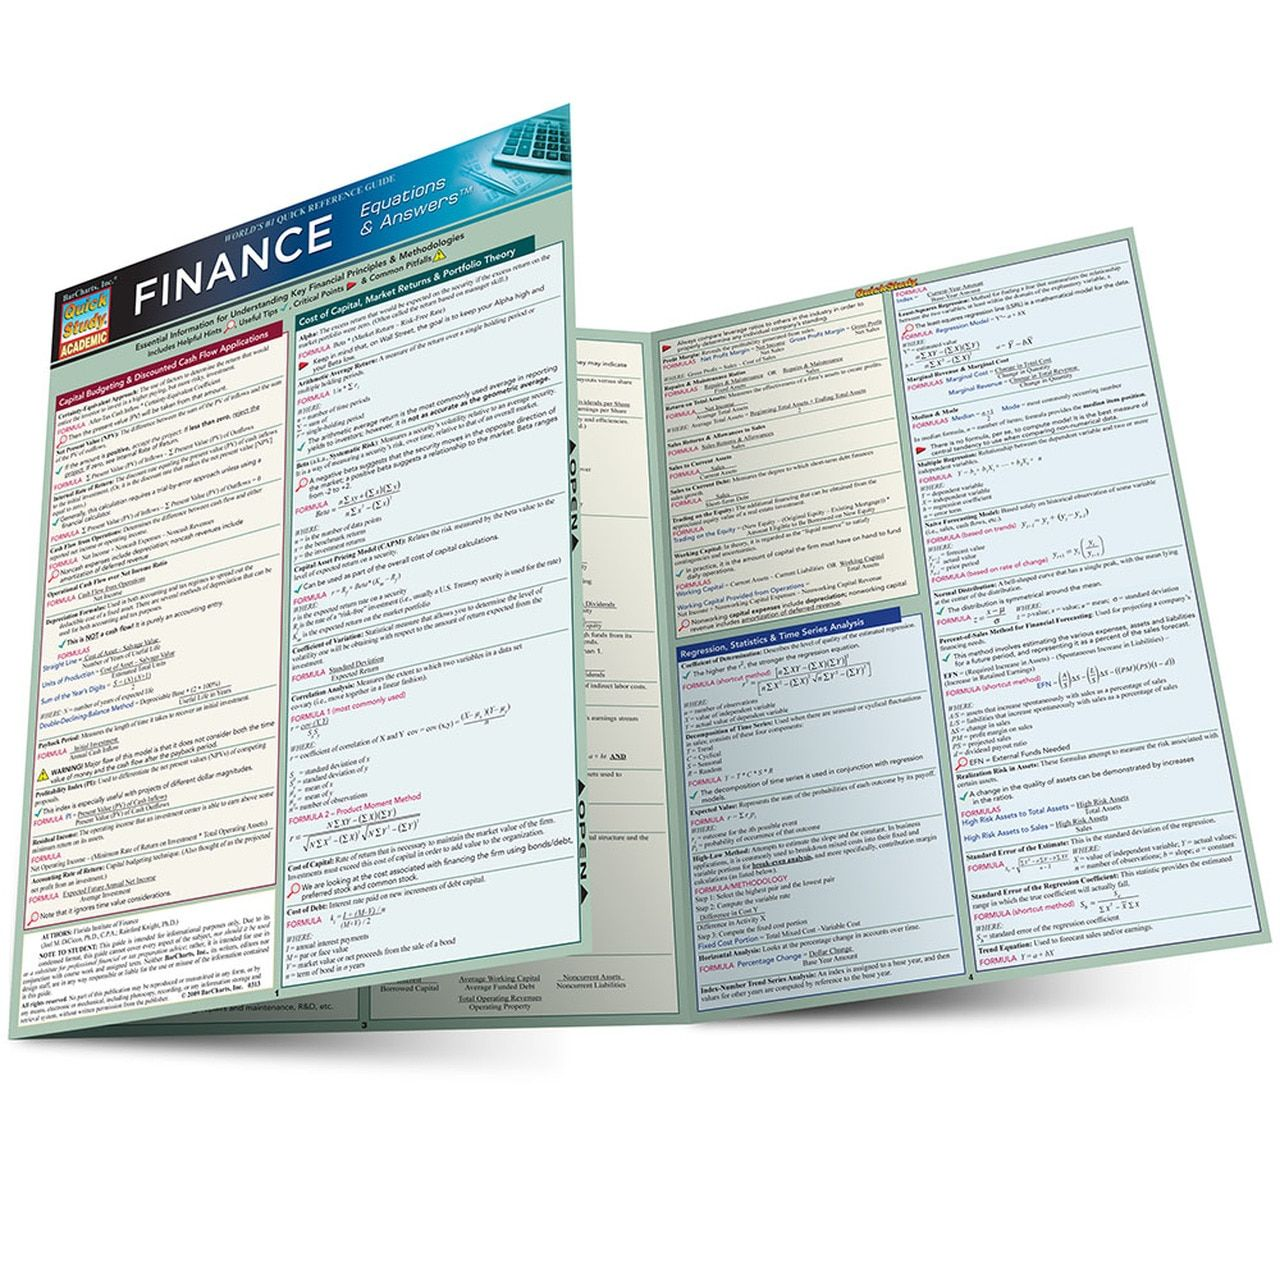 Finance equations answers laminated study guide